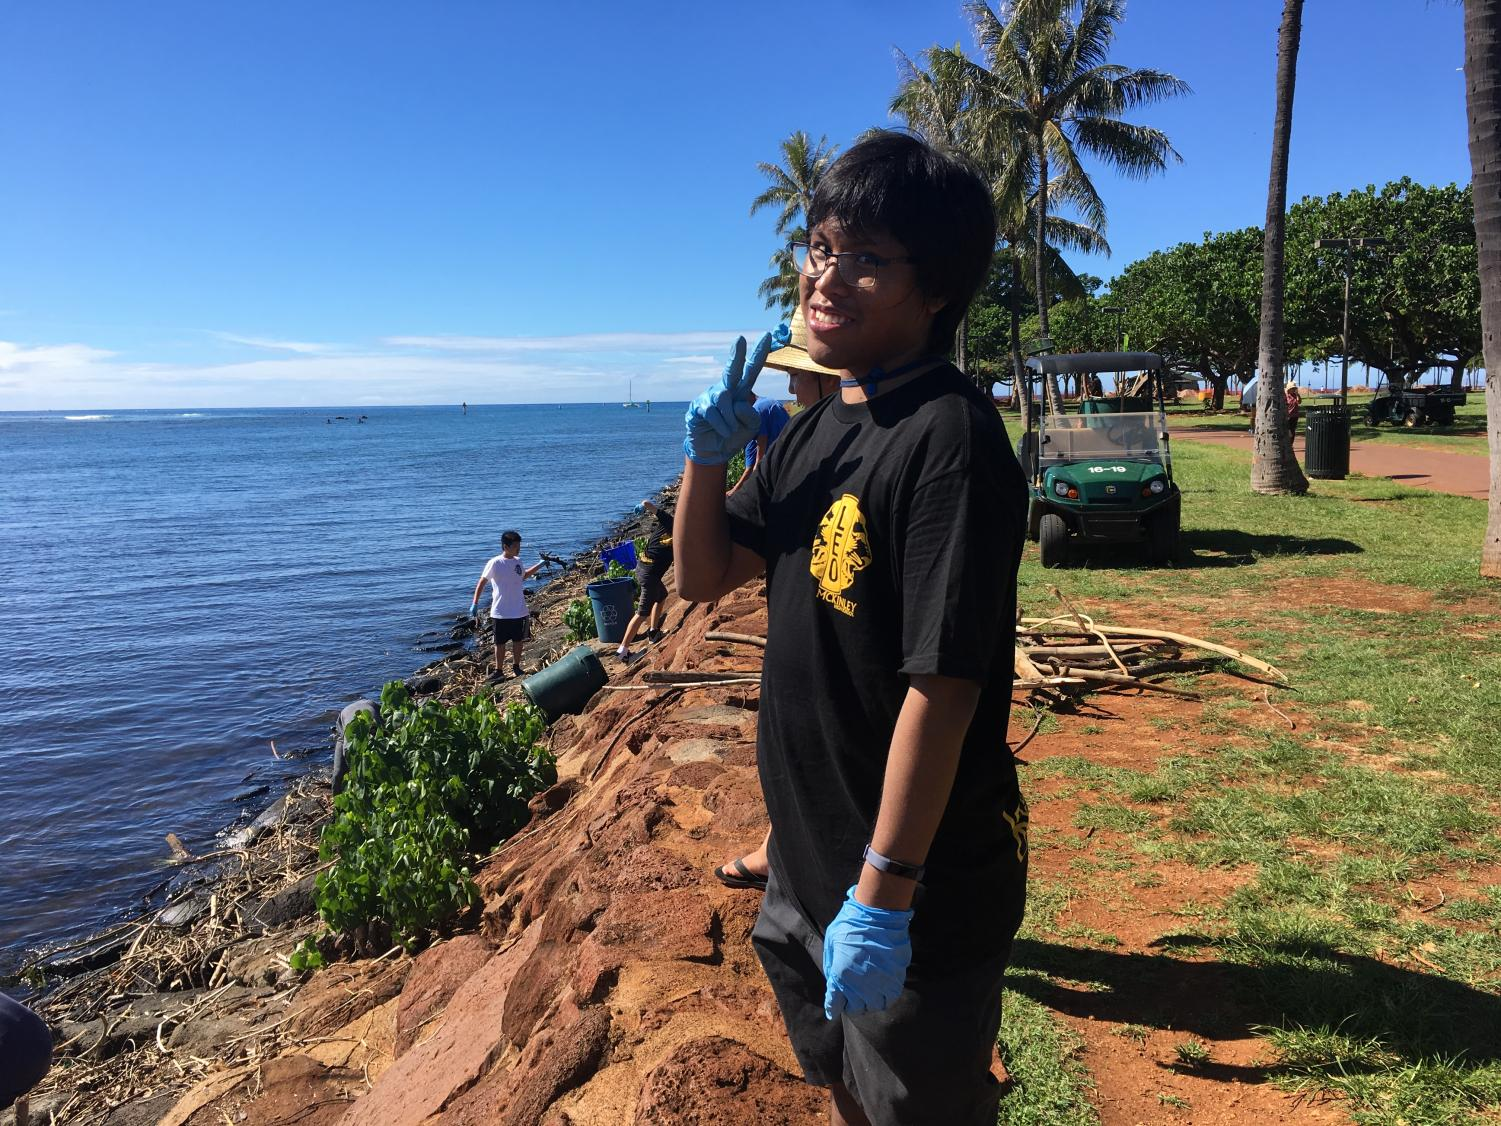 Jason Yadao, the adviser for LEO Club, supervised his students at a beach clean up at Ala Moana Beach Park.